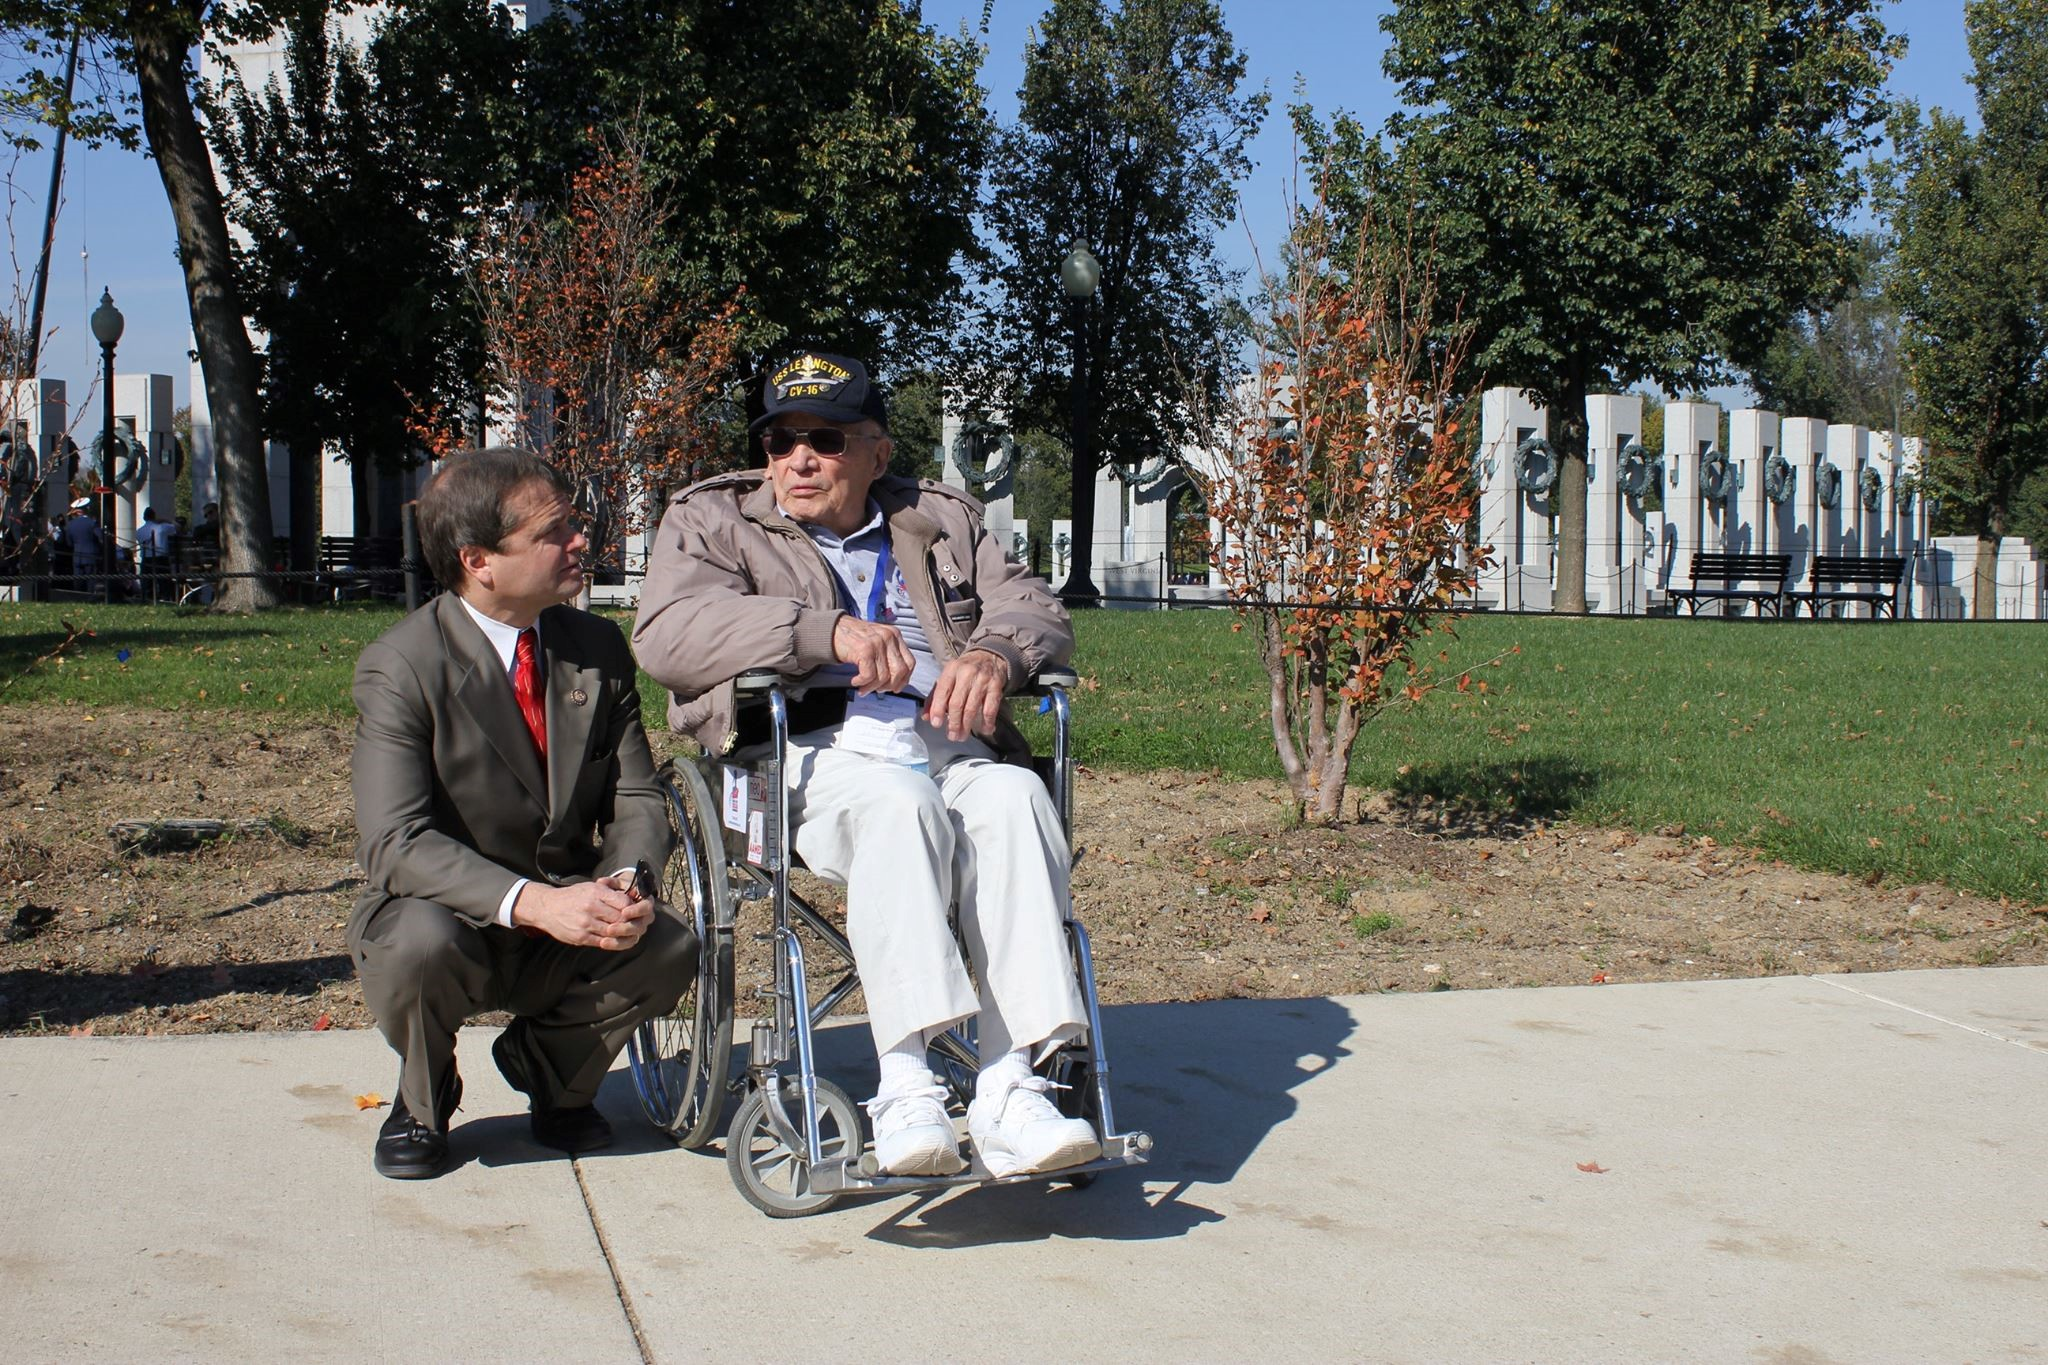 Rep. Quigley kneels on the ground to speak with a veteran in a wheelchair near the World War II Memorial in Washington, DC during an Honor Flight visit